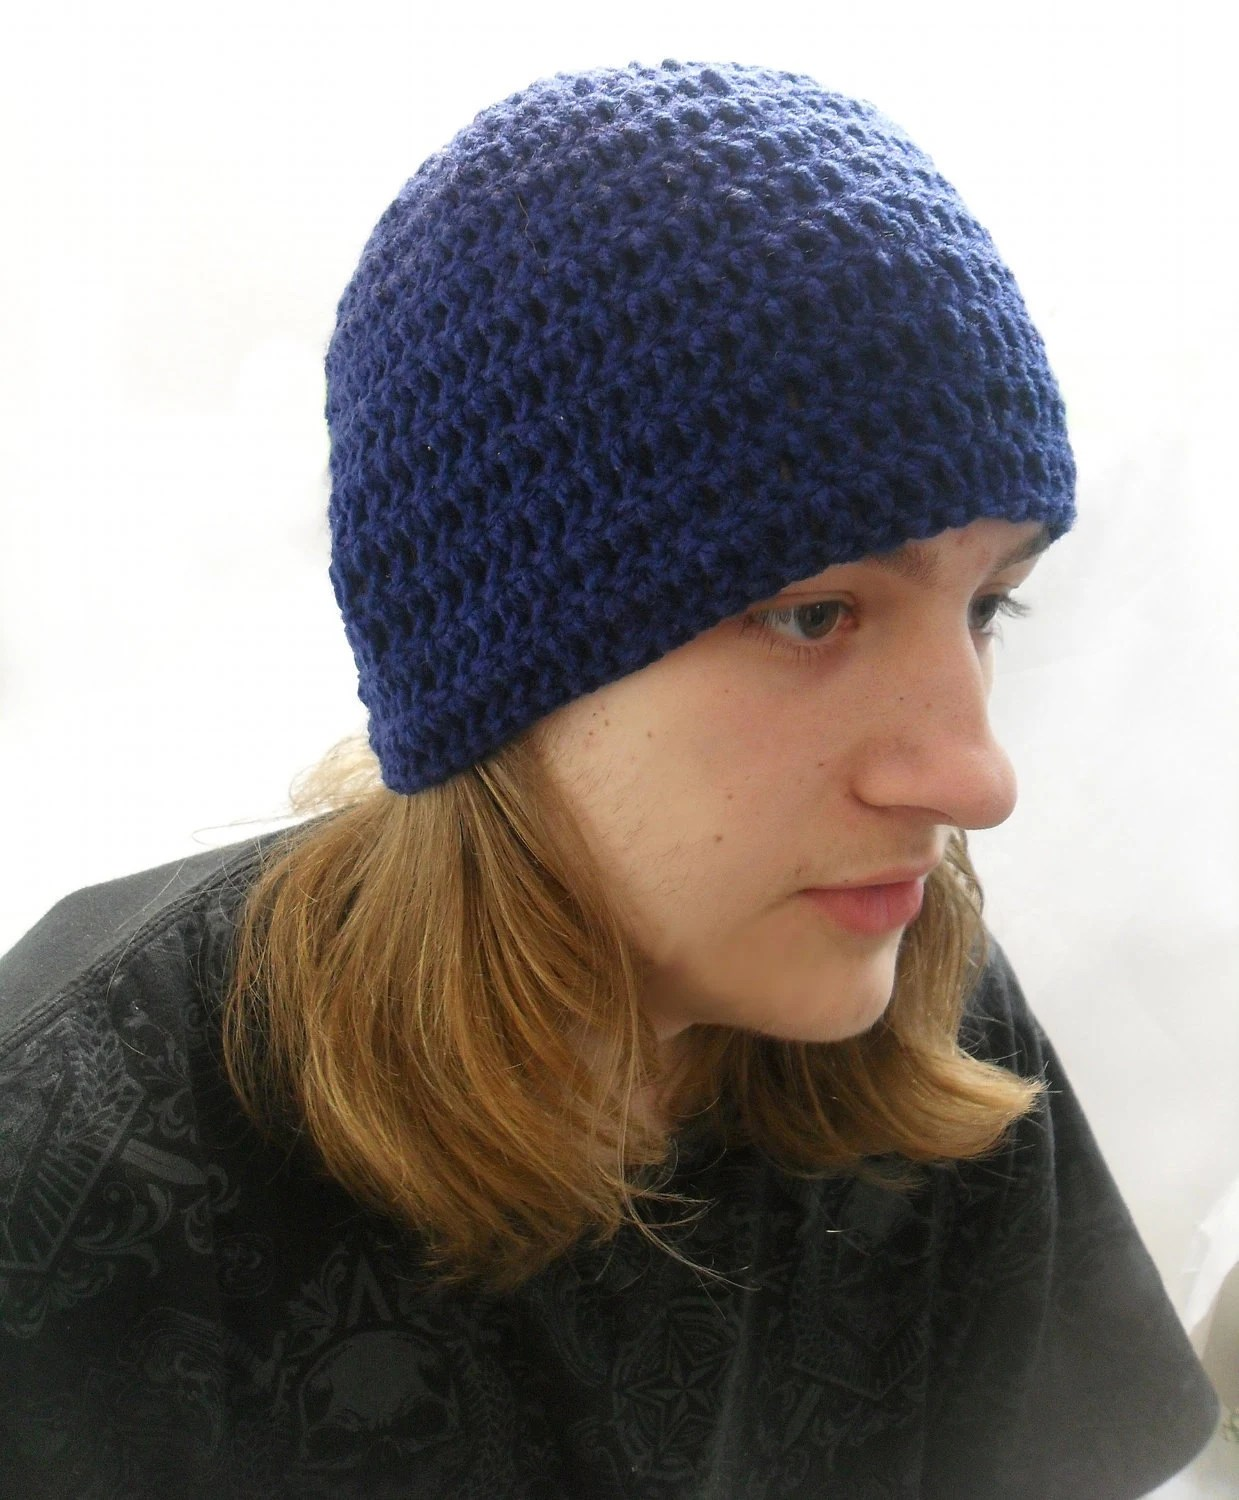 Crochet Mens Beanie Simple Man in Navy Blue Medium / Large - AddSomeStitches